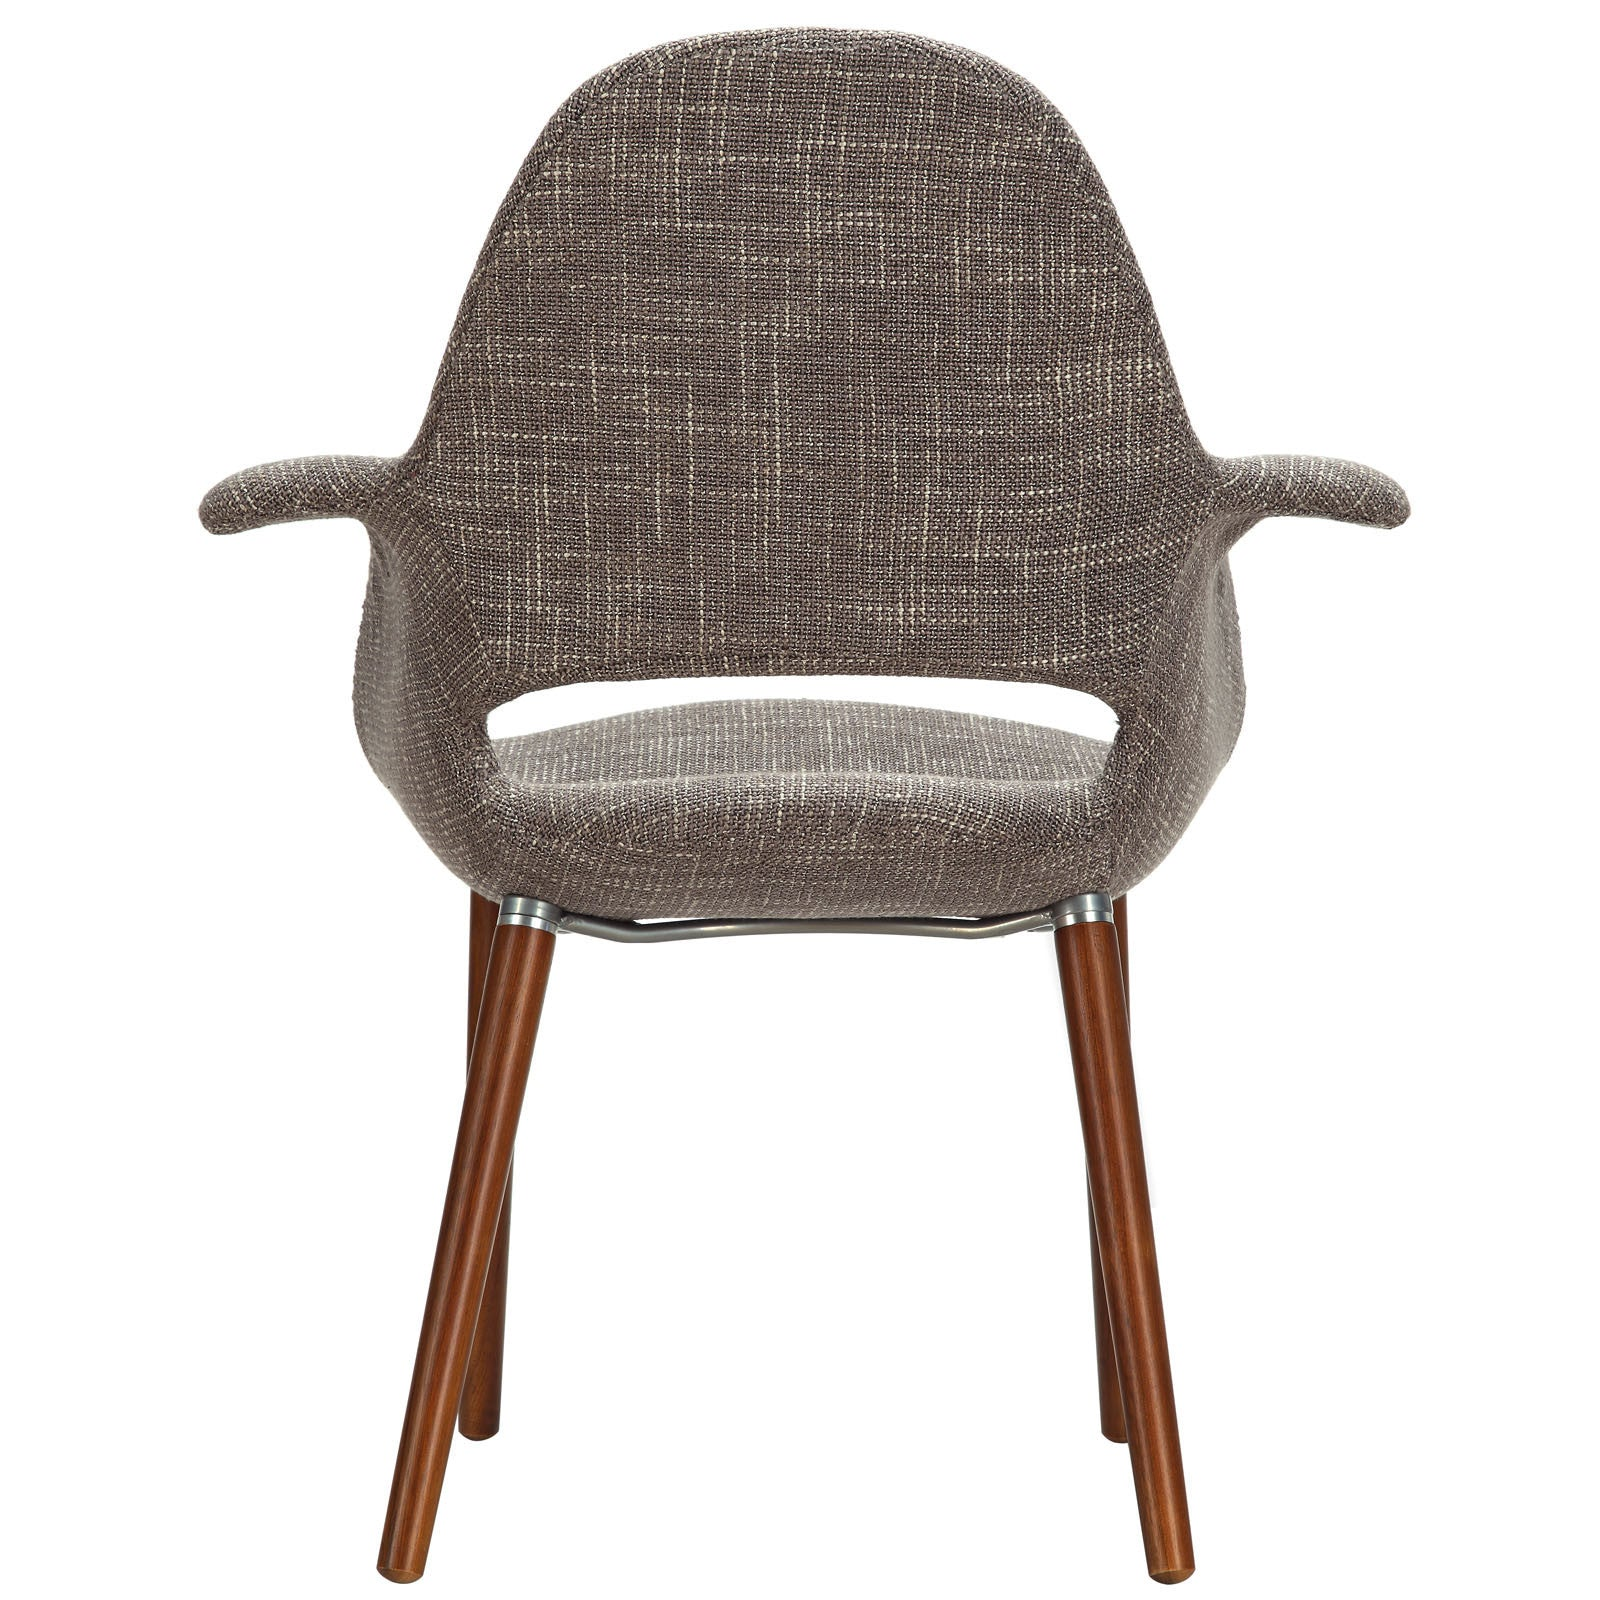 ... Saarinen Organic Chair Reproduction   The Modern Source   3 ...